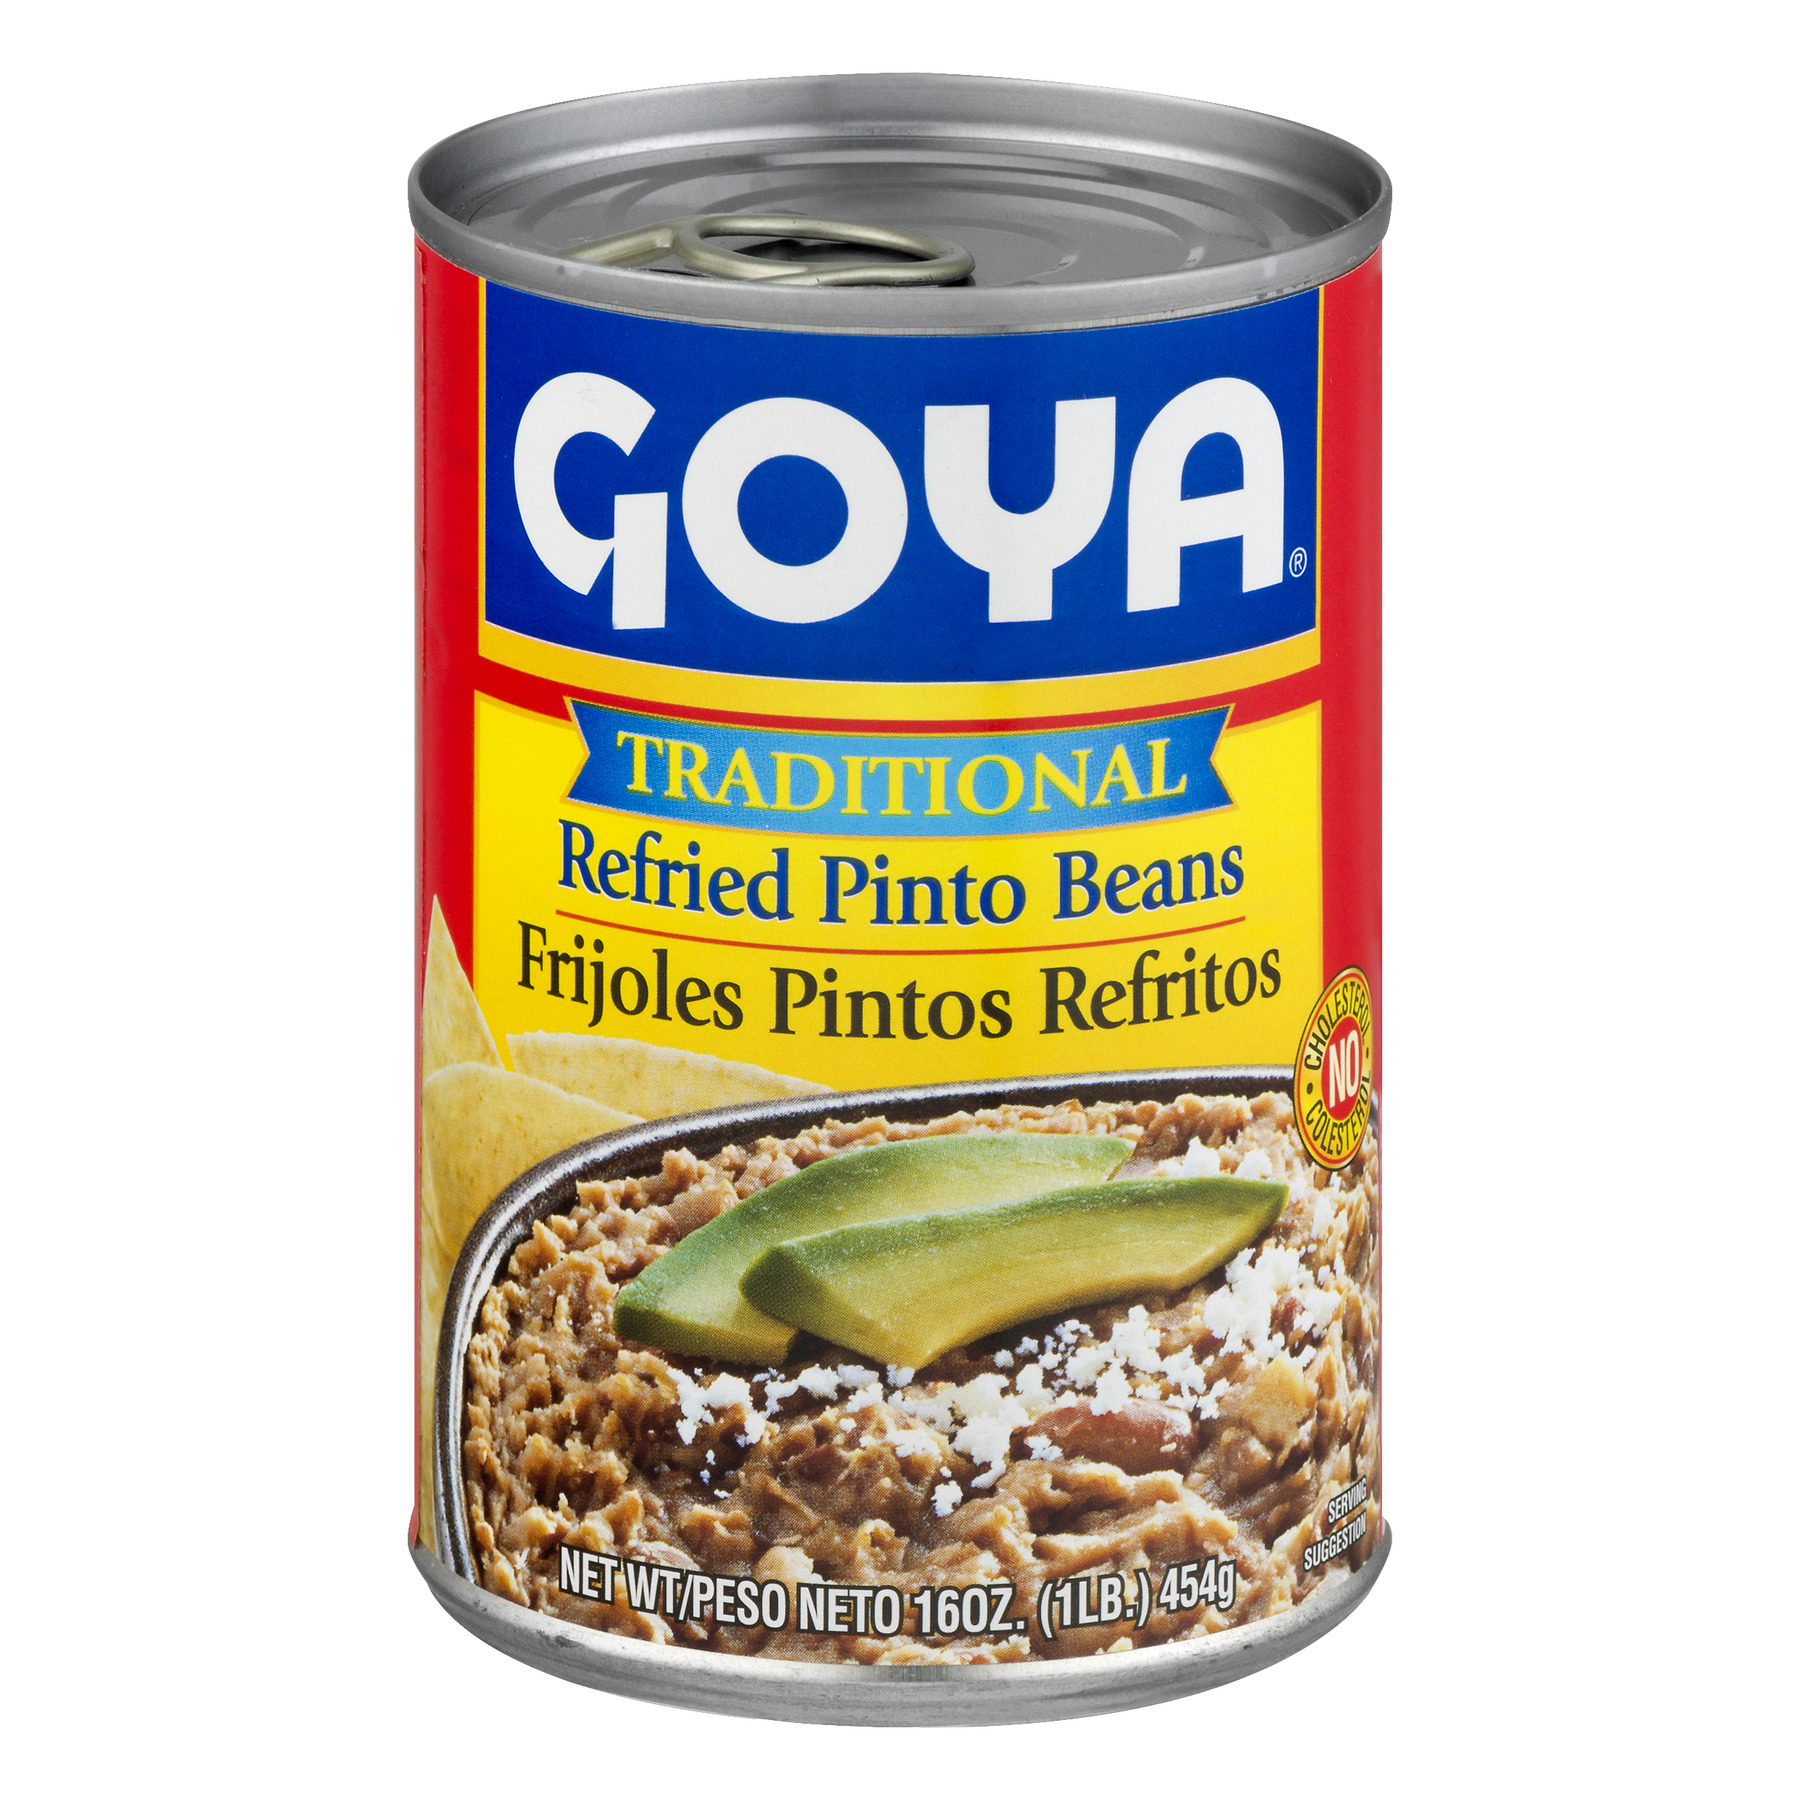 Goya Refried Pinto Beans Traditional, 16 Oz